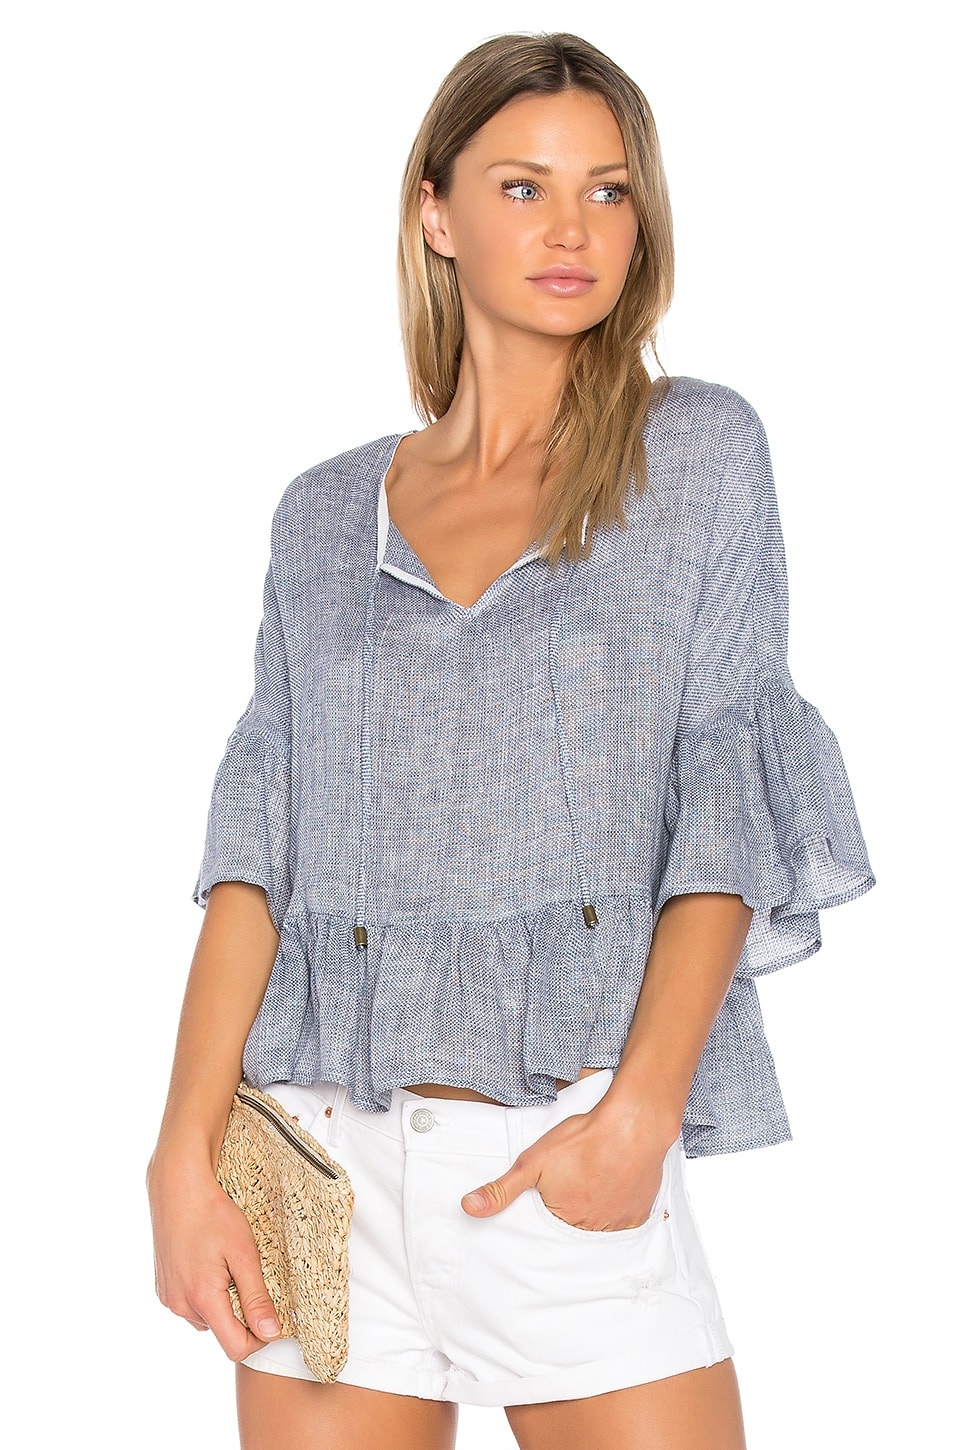 maven west Dani Peasant Blouse in Denim